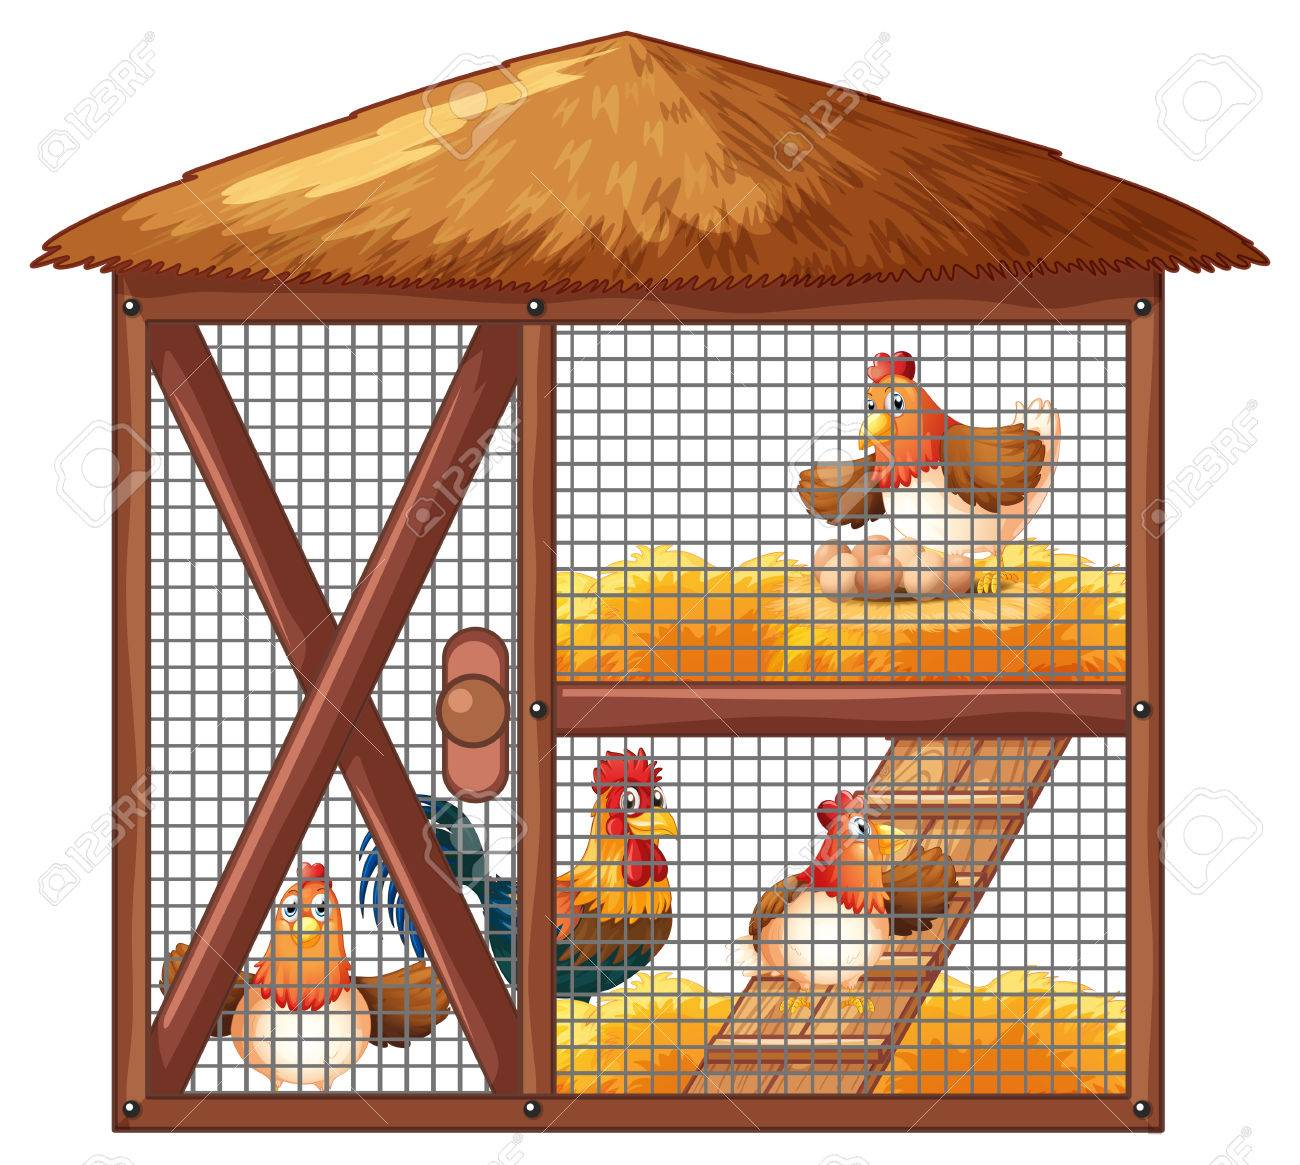 Chickens in chicken coop illustration.